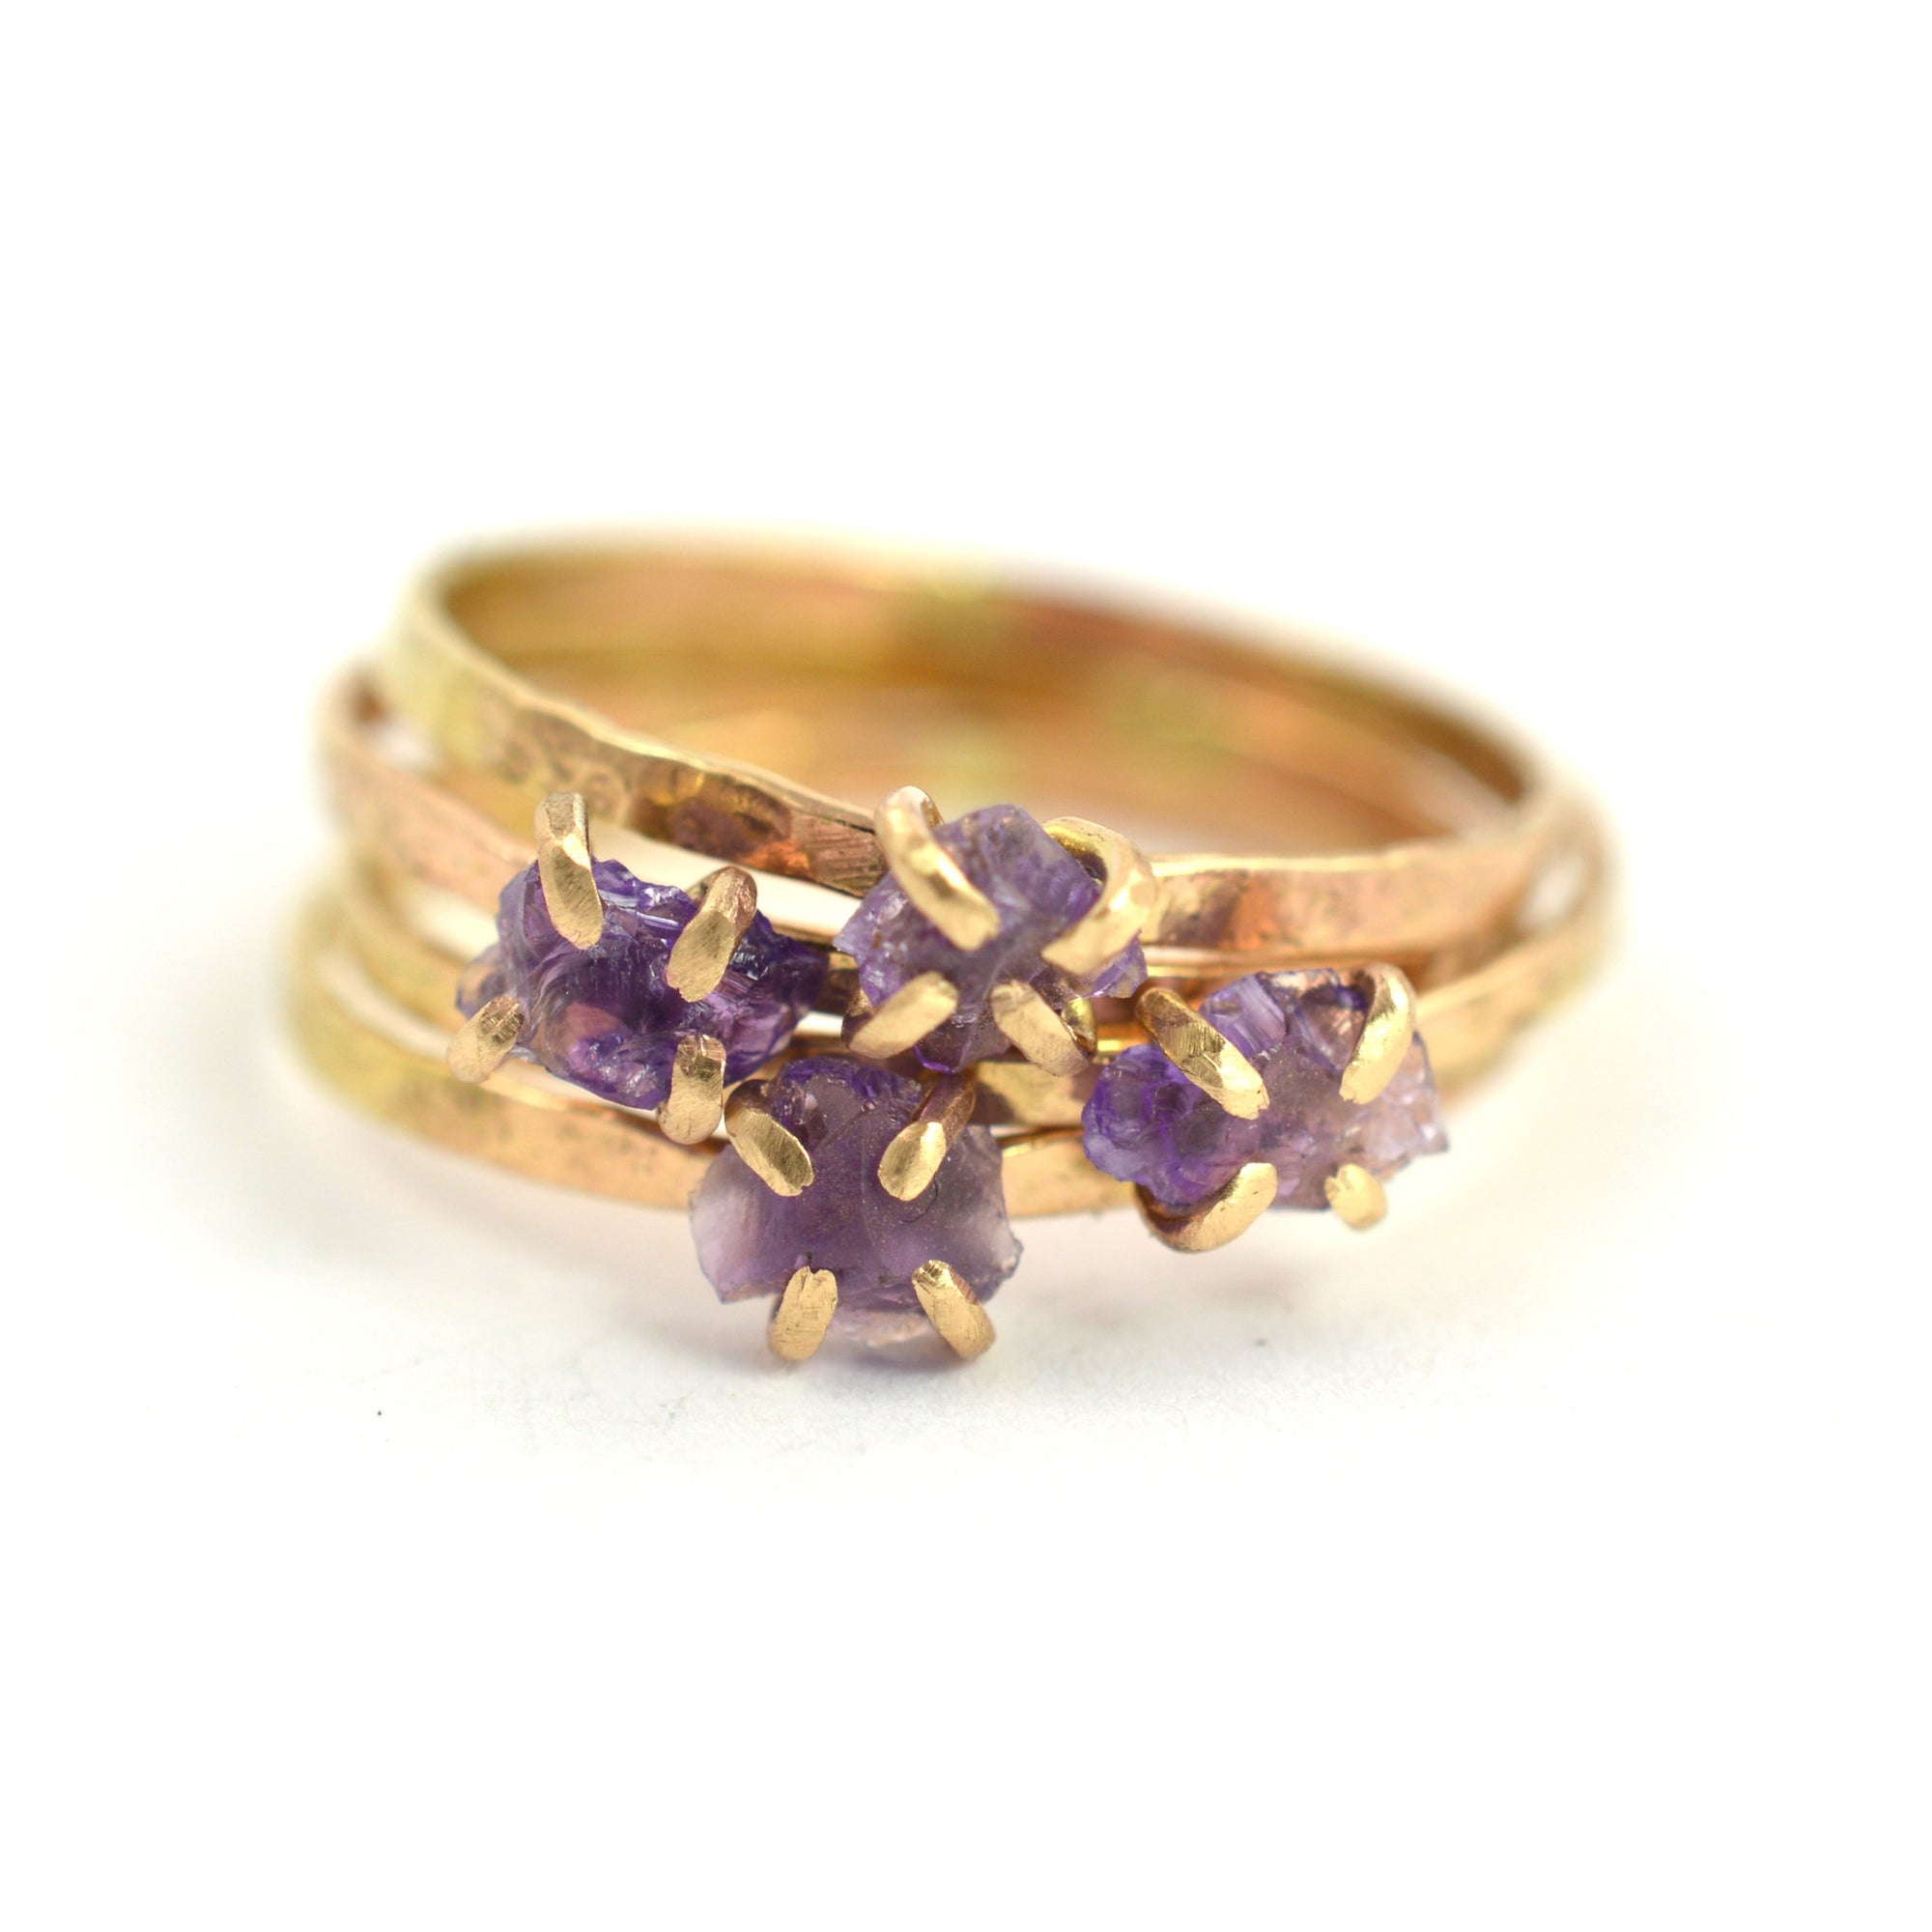 unique amethyst rings gold paolo costagli brillante rose valentina amethist an medium engagement products ring diamond